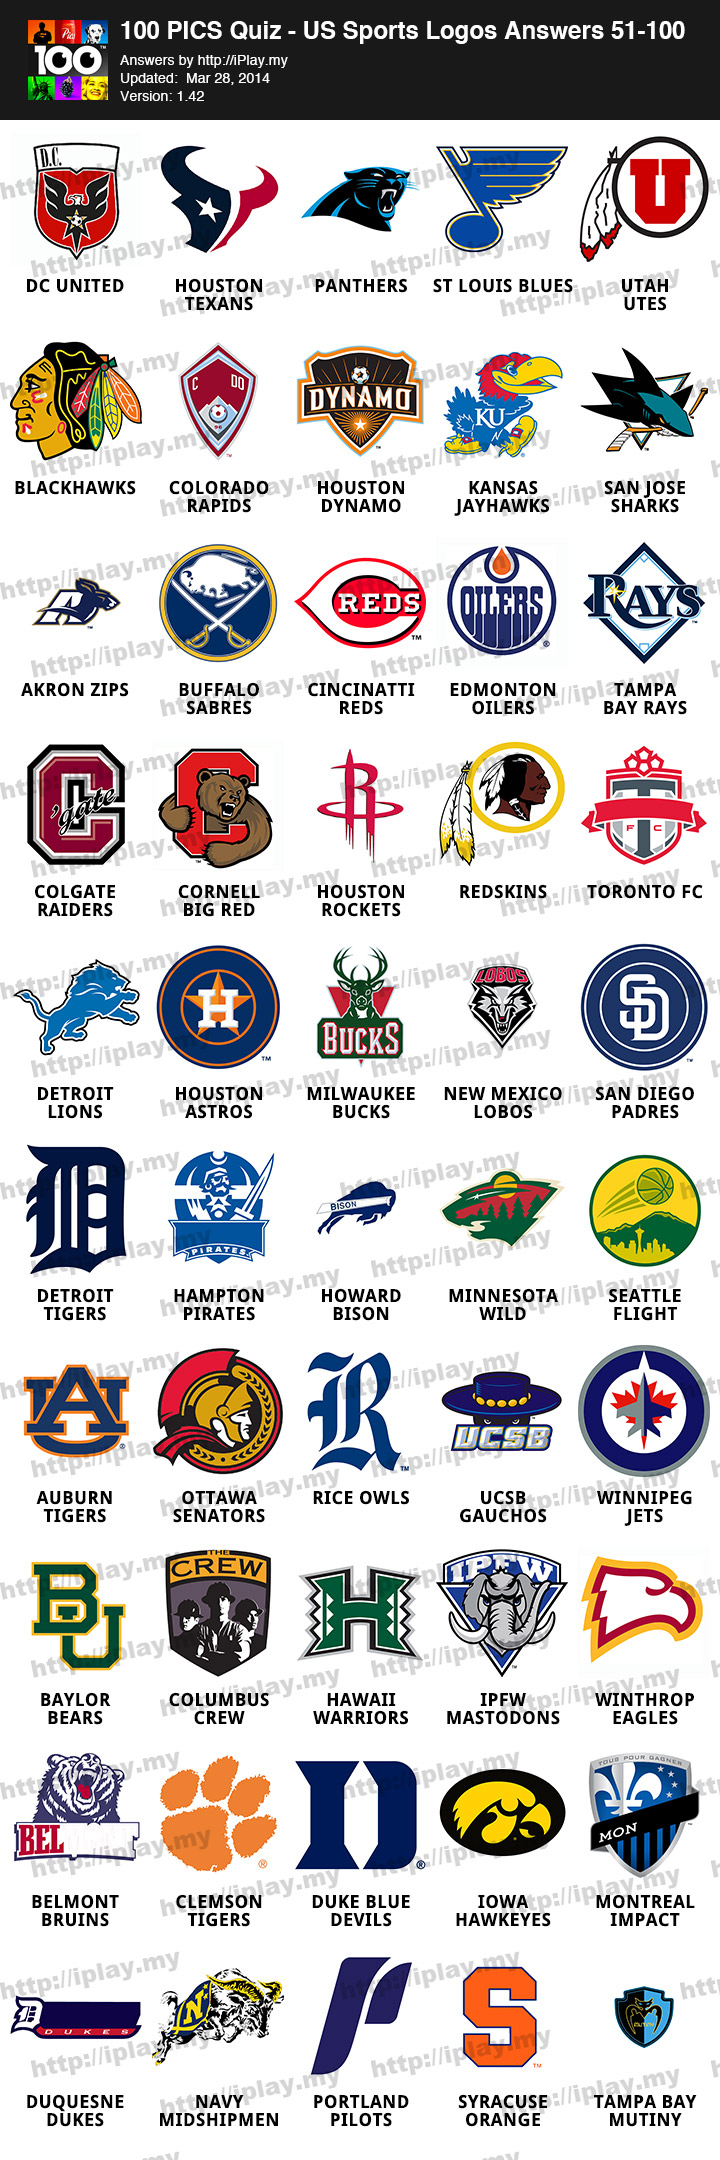 100 Pics Us Sports Logos Answers Iplay My